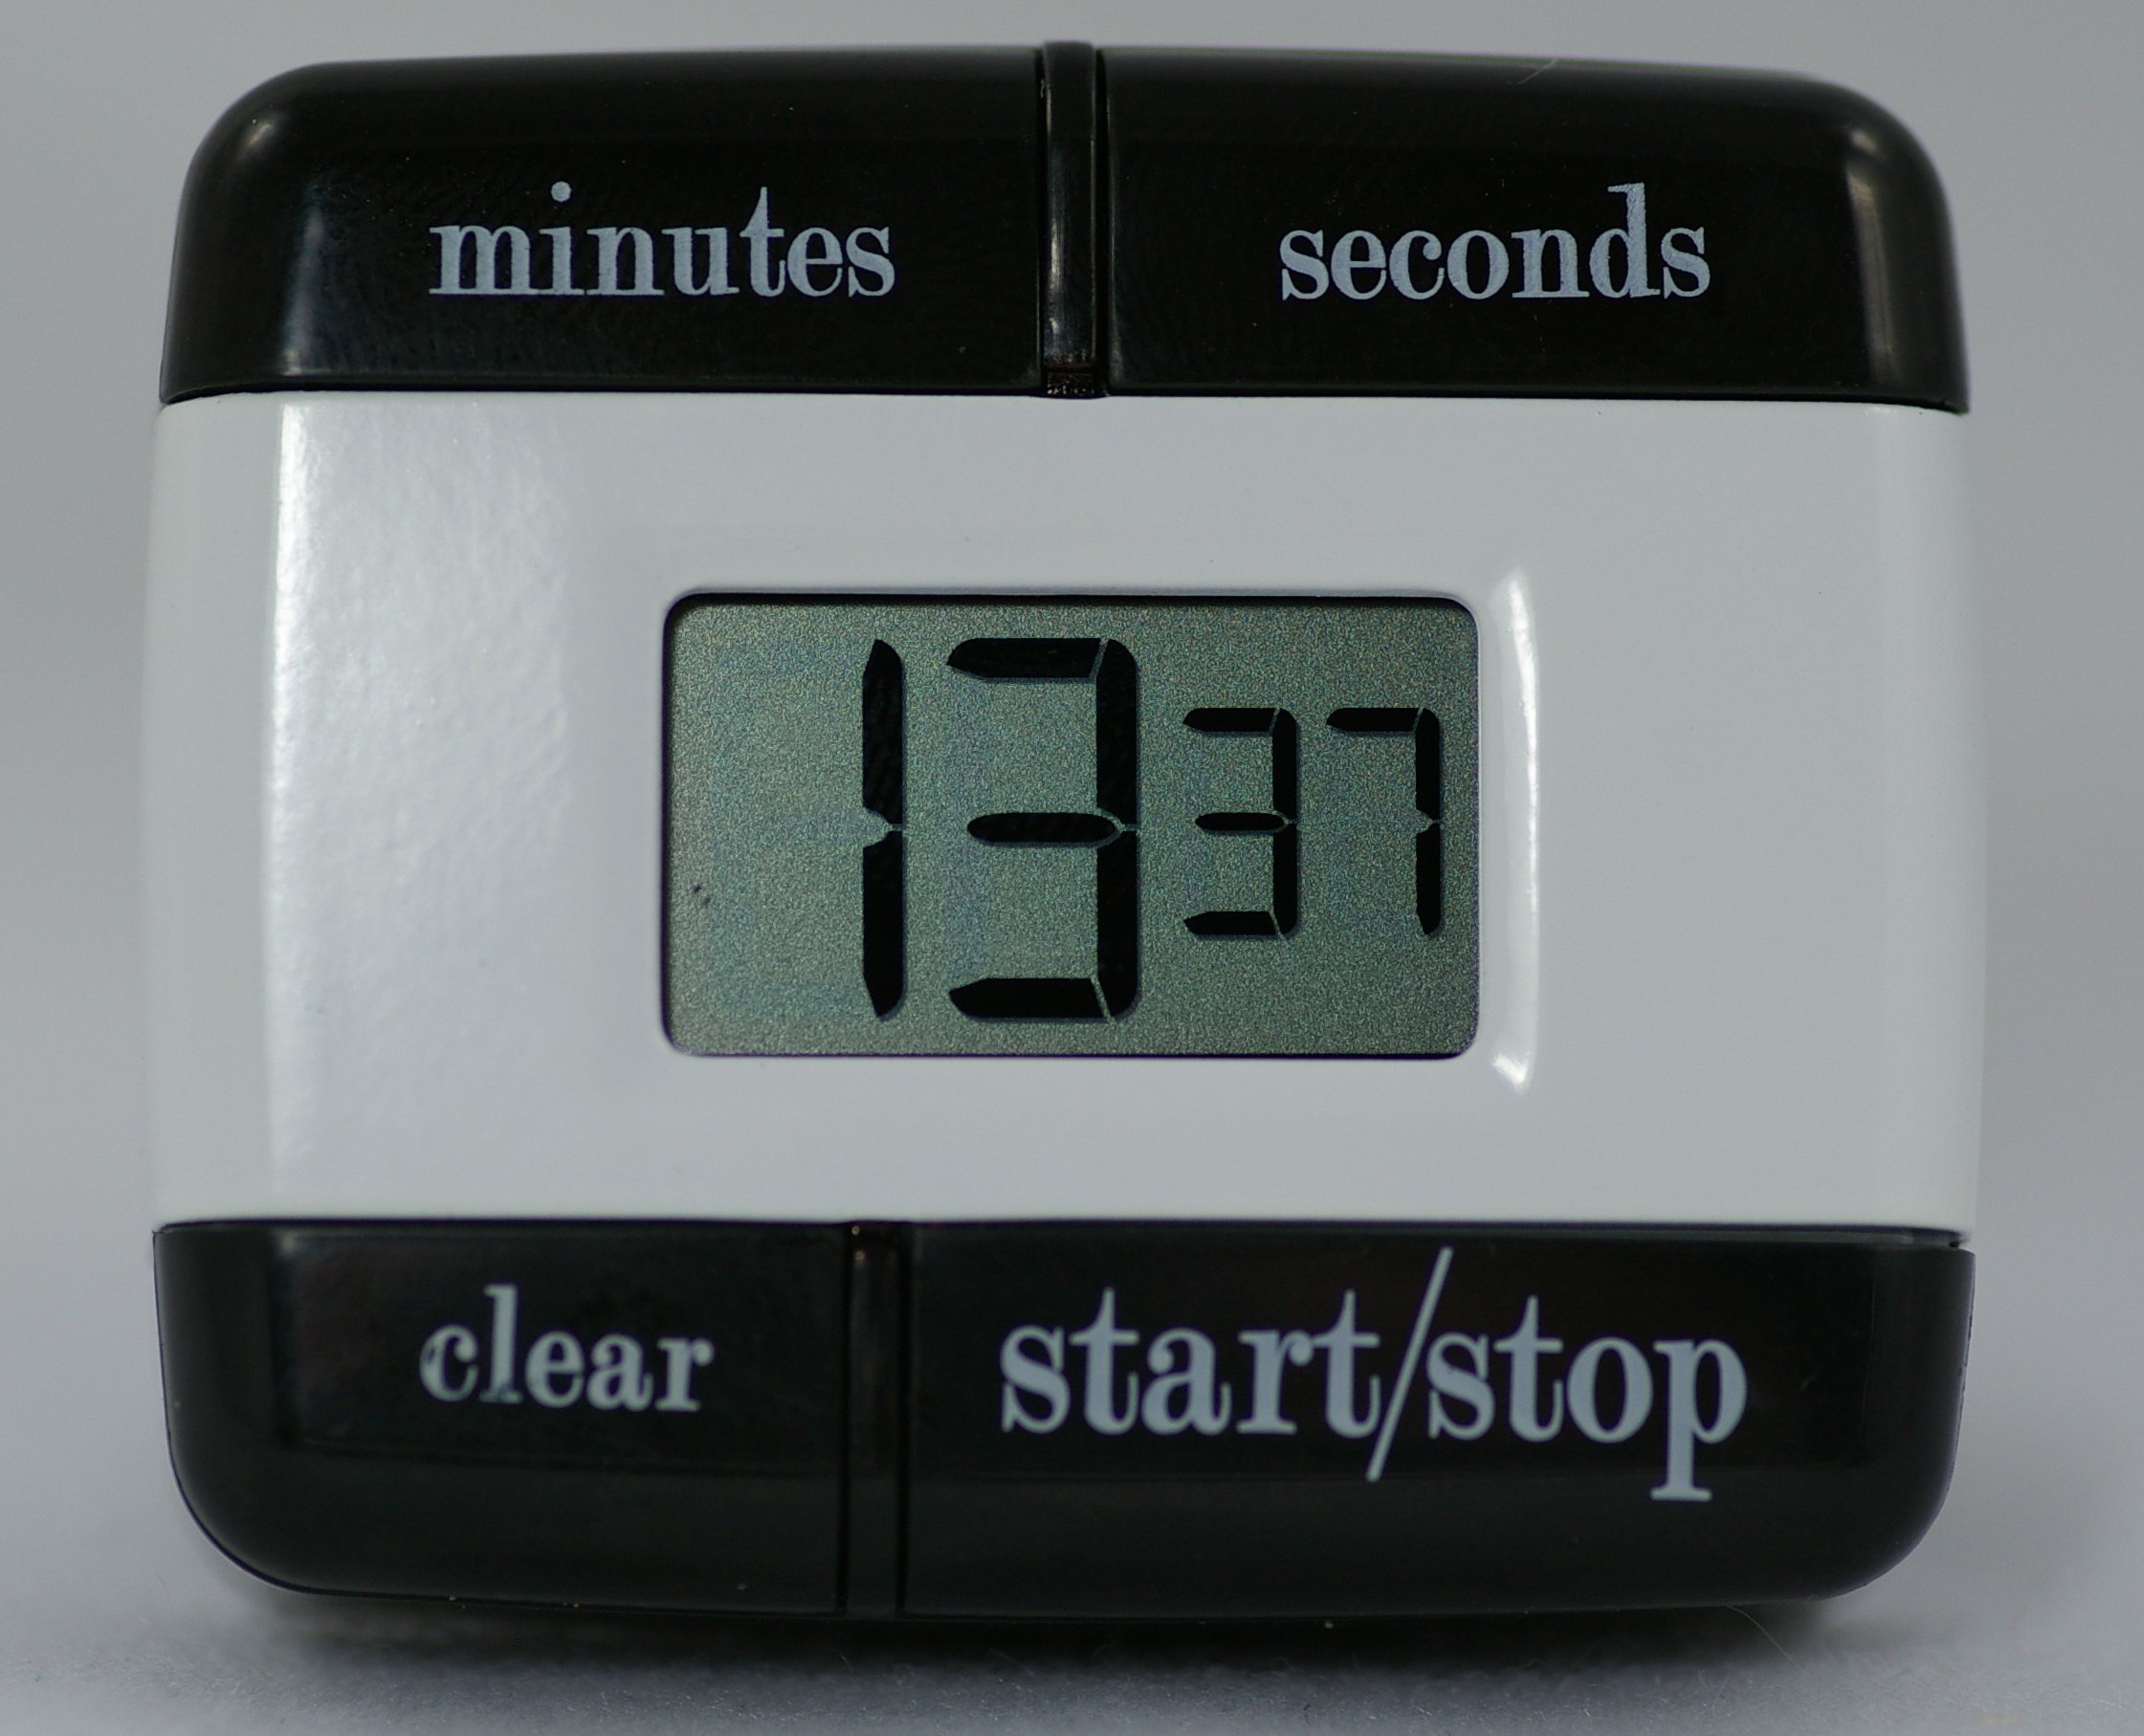 File:Digital Kitchen Timer